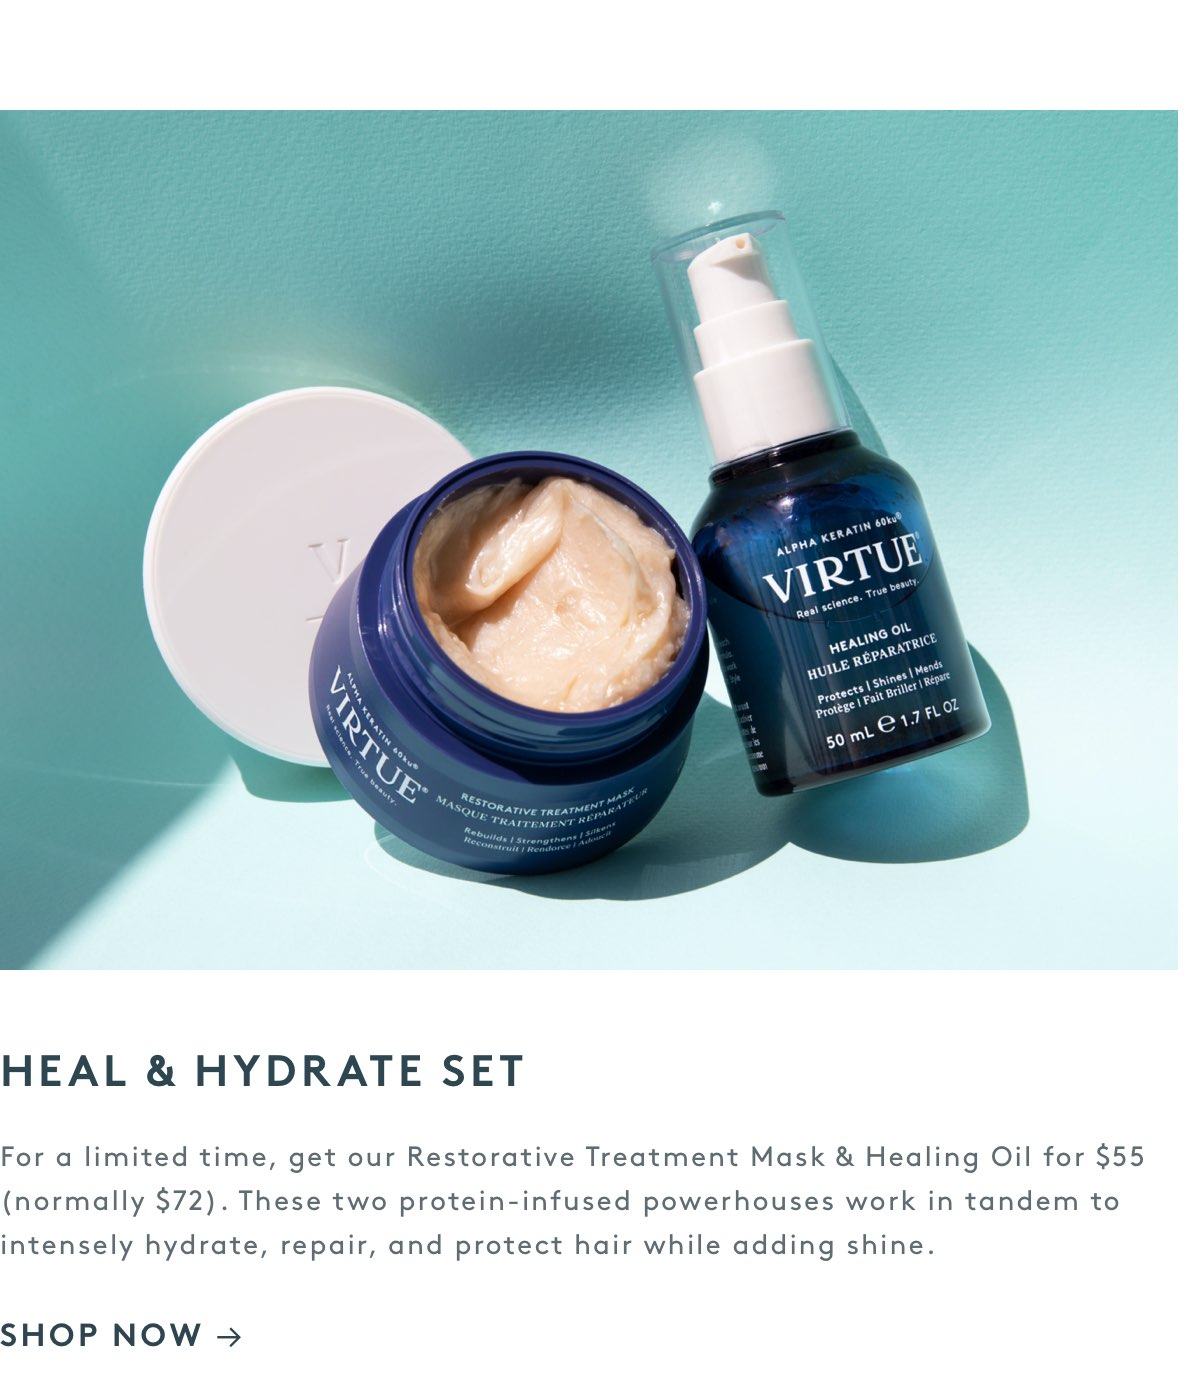 Heal & Hydrate Set